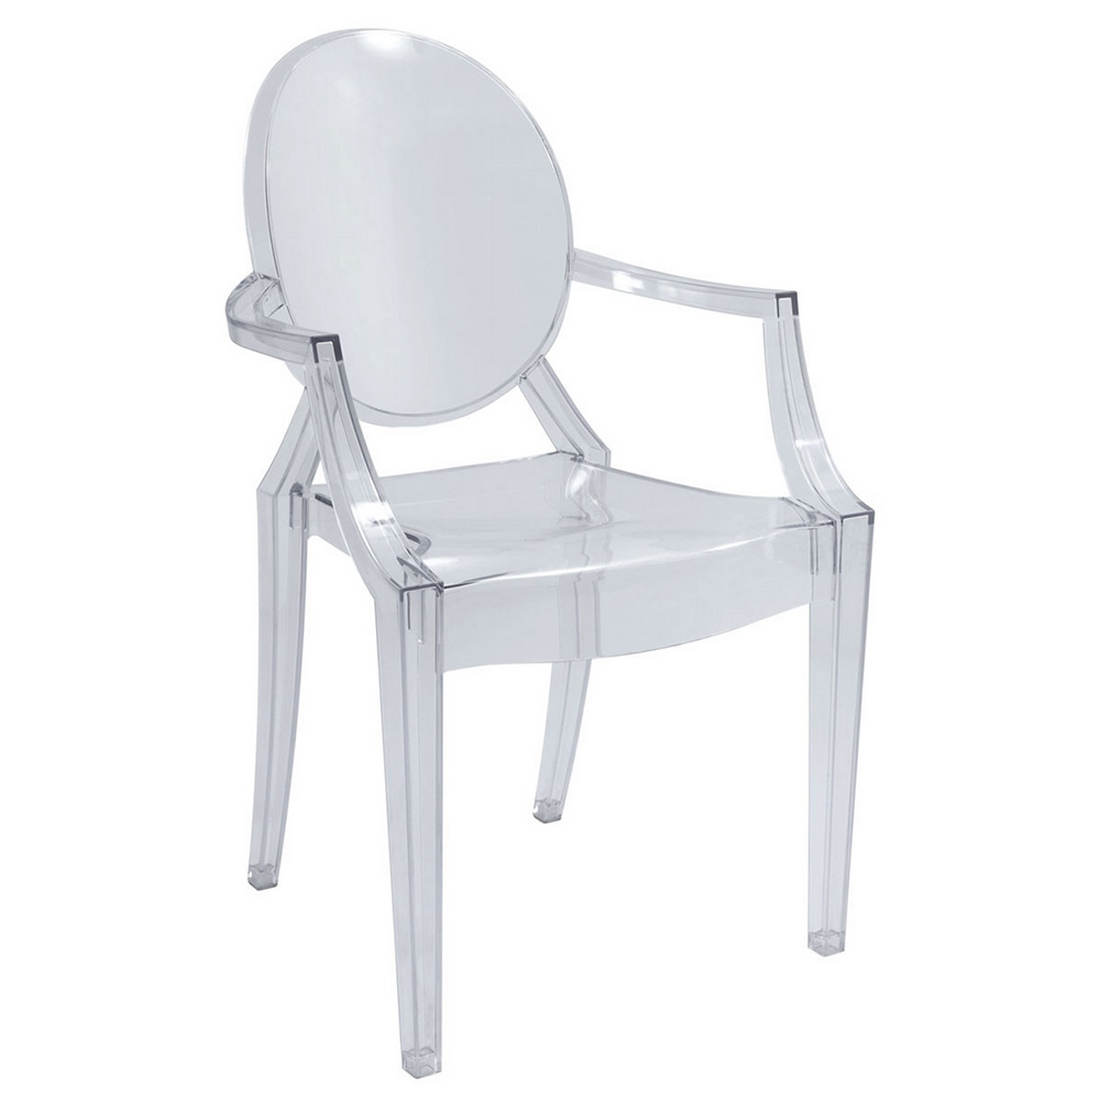 louis ghost chair by kartell the classic reinvented by philippe starck